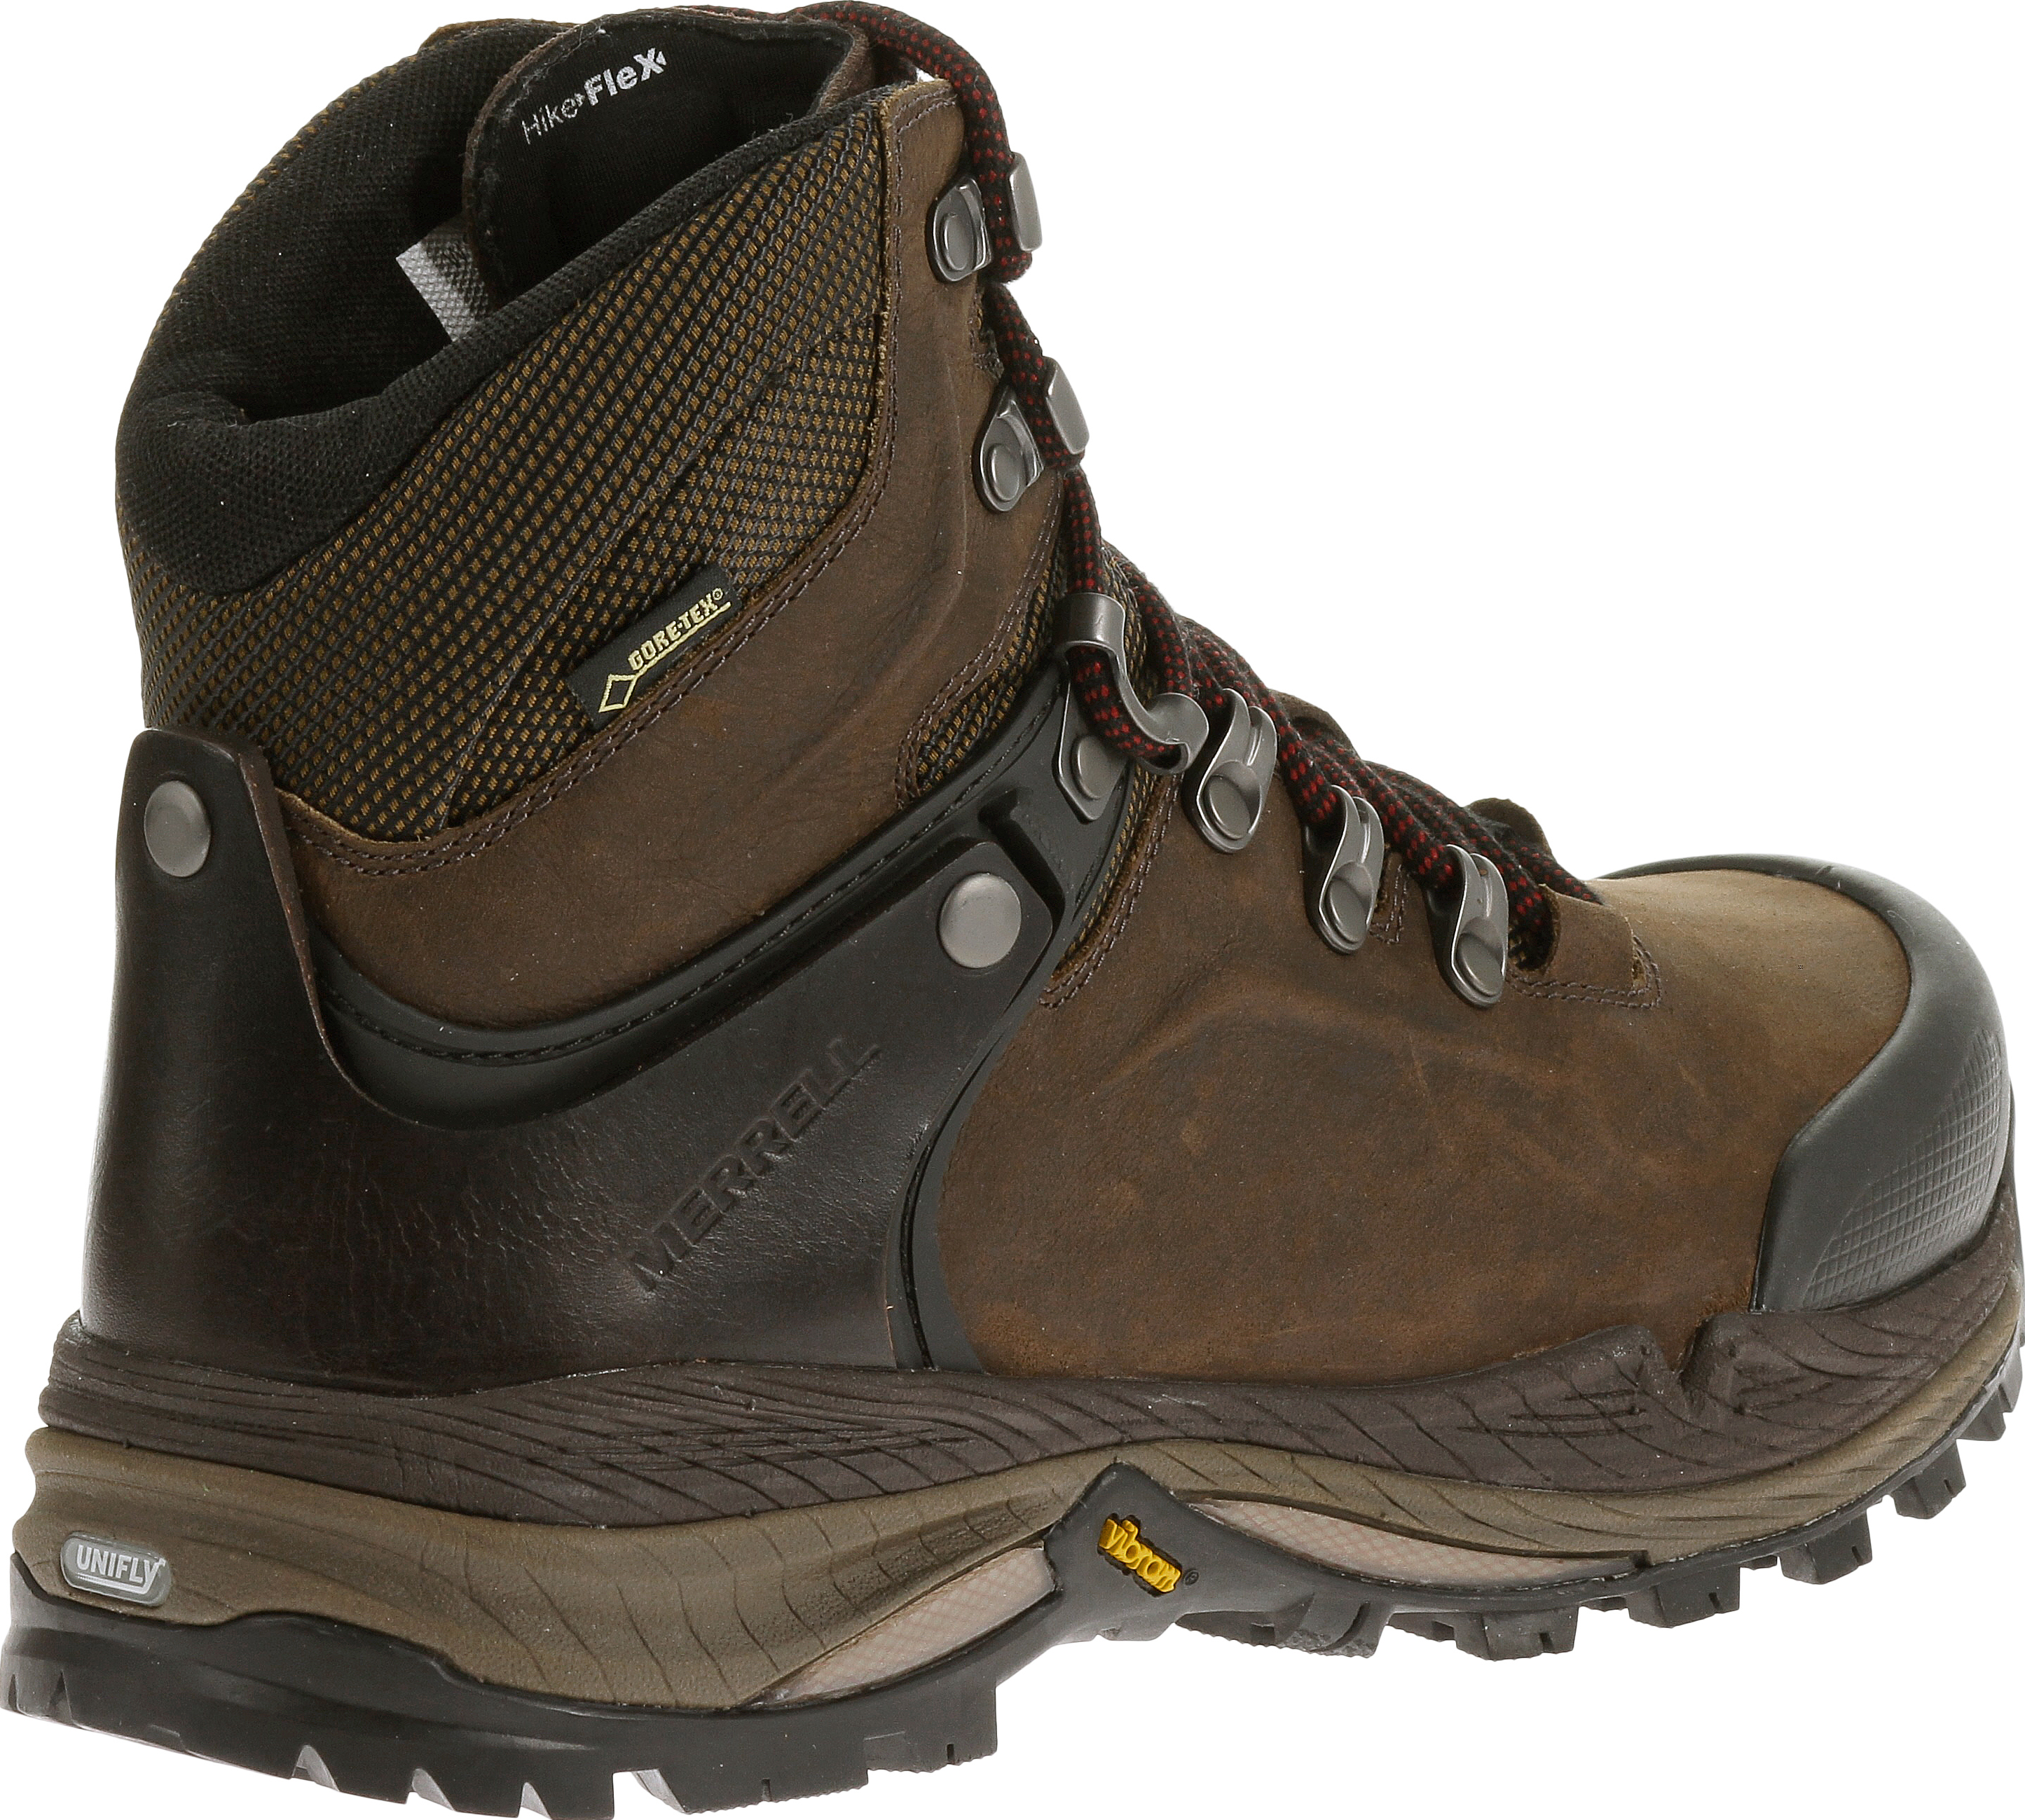 238a2c36471 Merrell Crestbound Gore-Tex Hiking Boots - Women's